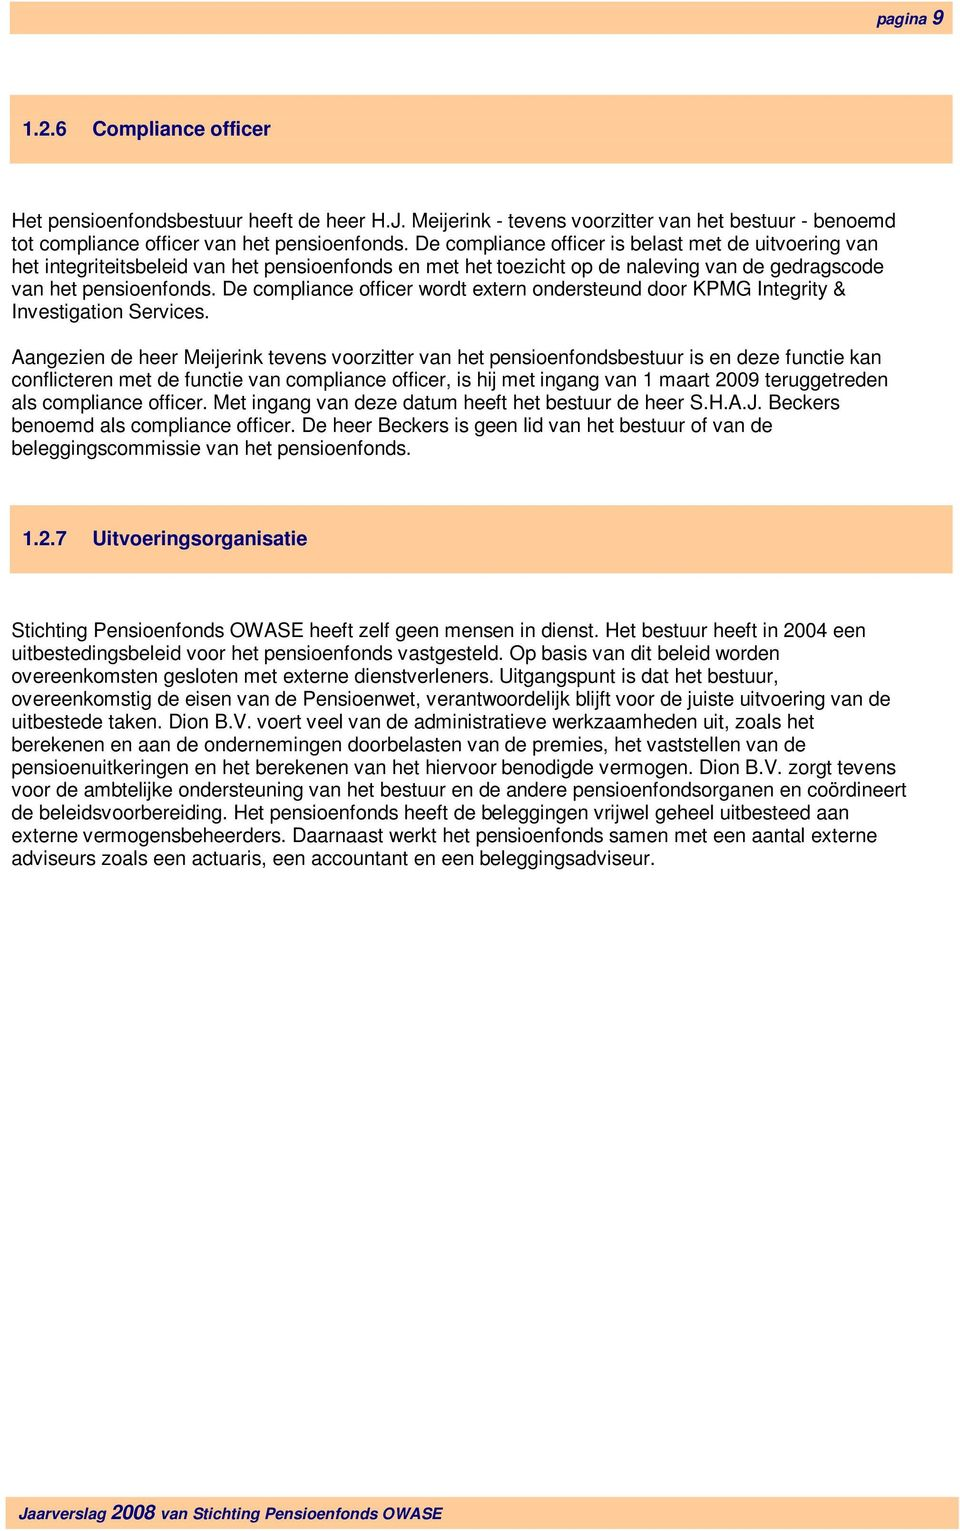 De compliance officer wordt extern ondersteund door KPMG Integrity & Investigation Services.